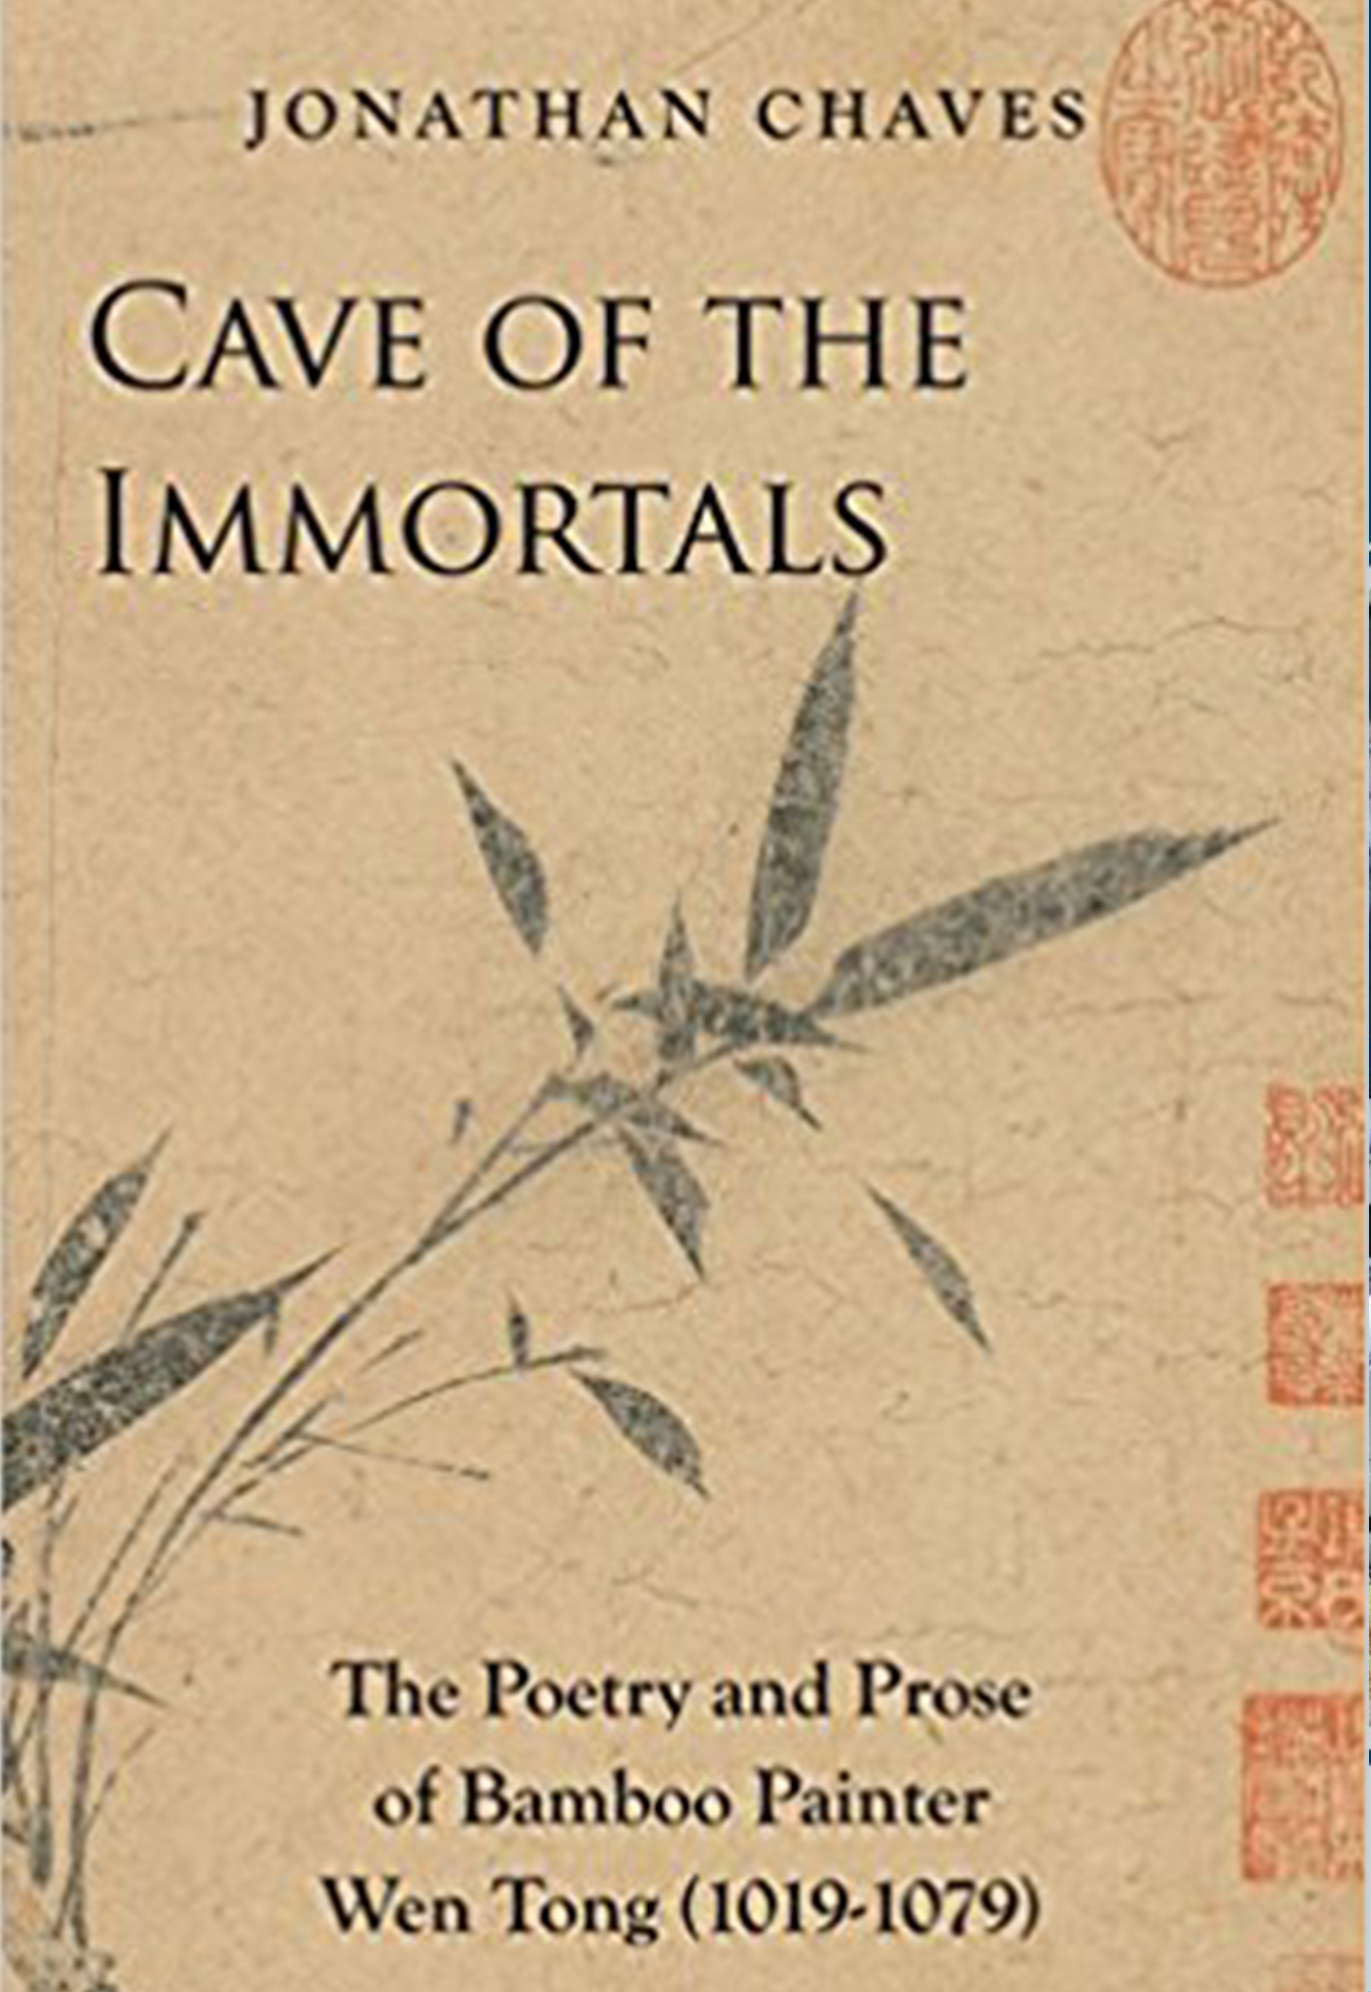 photo: text Jonathan Chaves, Cave of the Immortals The Poetry and Prose of Bamboo Painter Wen Tong (1019-1079). Bamboo leaves sprout from the lefthand bottom corner of the cover, there are Chinese stamps lining the righthand side of the cover